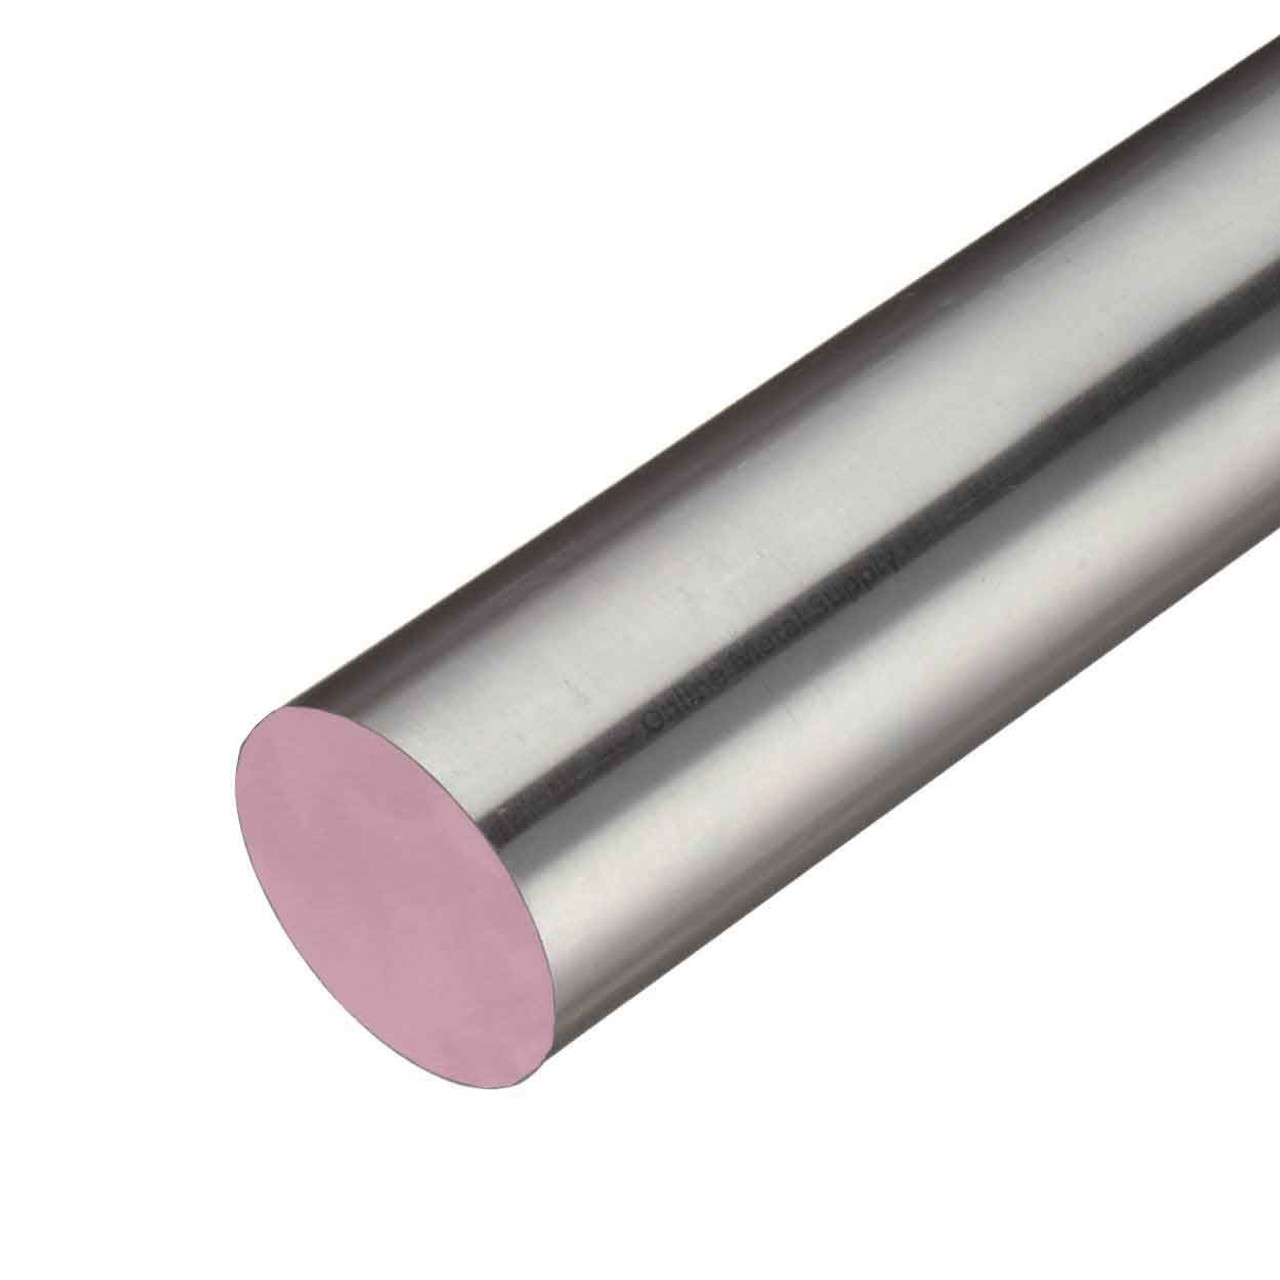 0.937 (15/16 inch) x 12 inches, 303 TGP Stainless Steel Round Rod